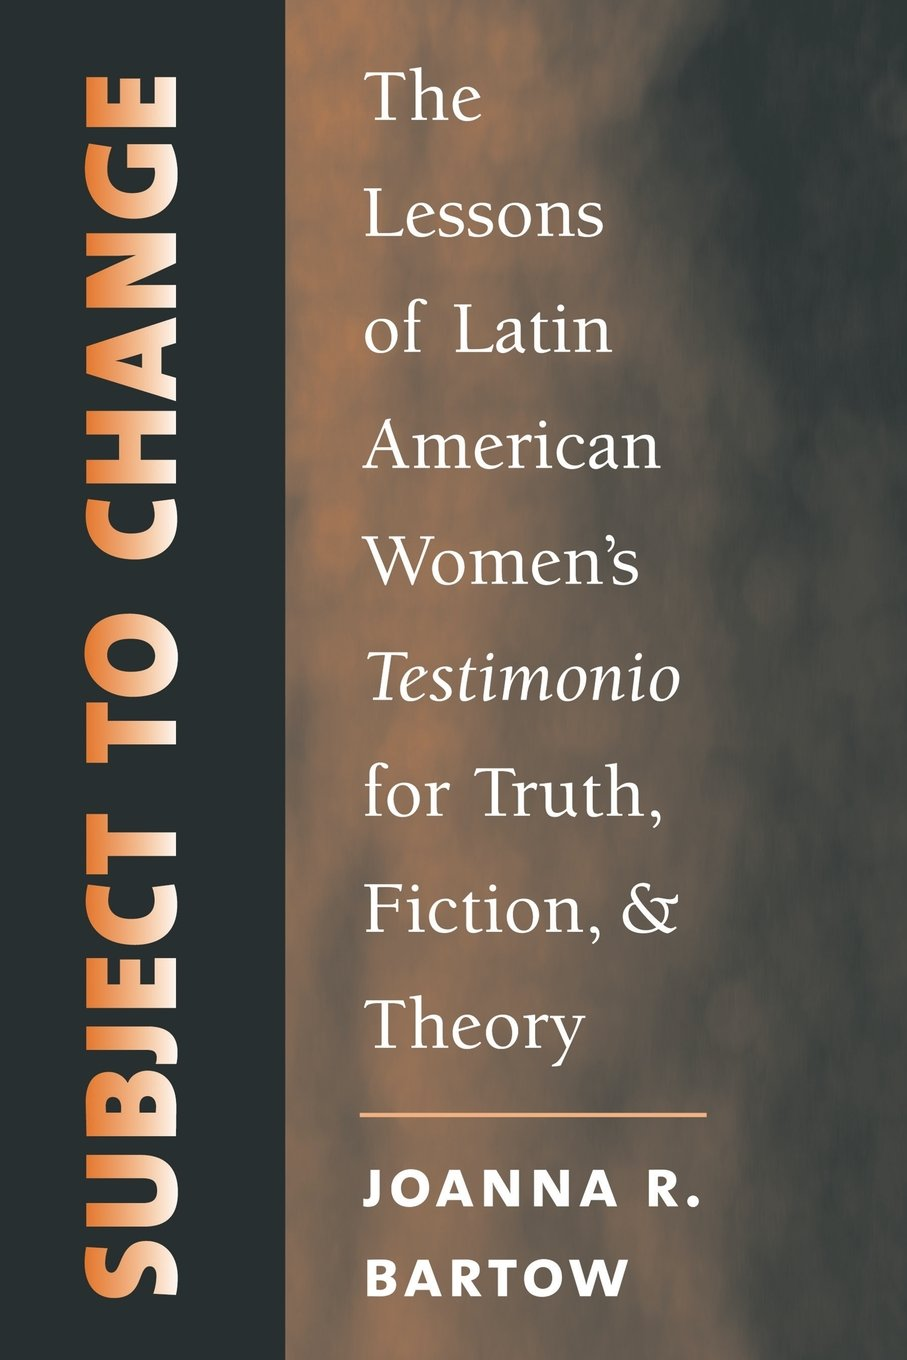 Subject to Change: The Lessons of Latin American Women's Testimonio for Truth, Fiction, and Theory (North Carolina Studies in the Romance Languages and Literatures)